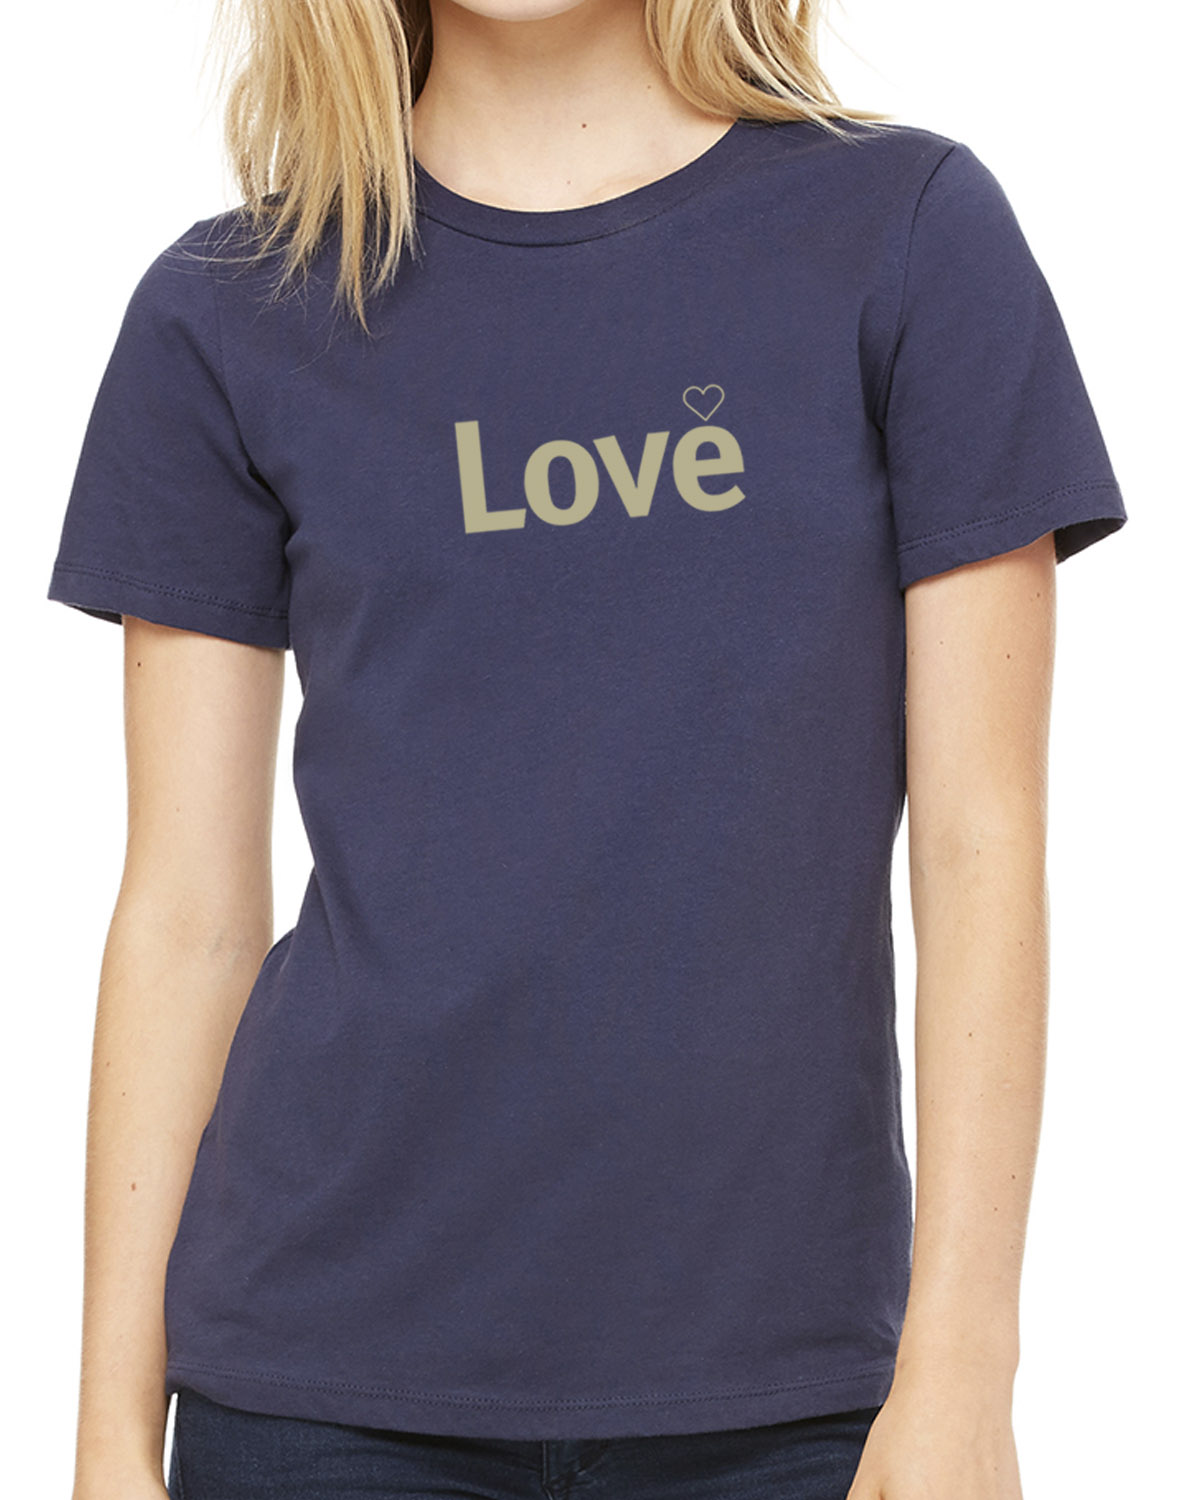 Short sleeve Love T-shirt for women (indigo)